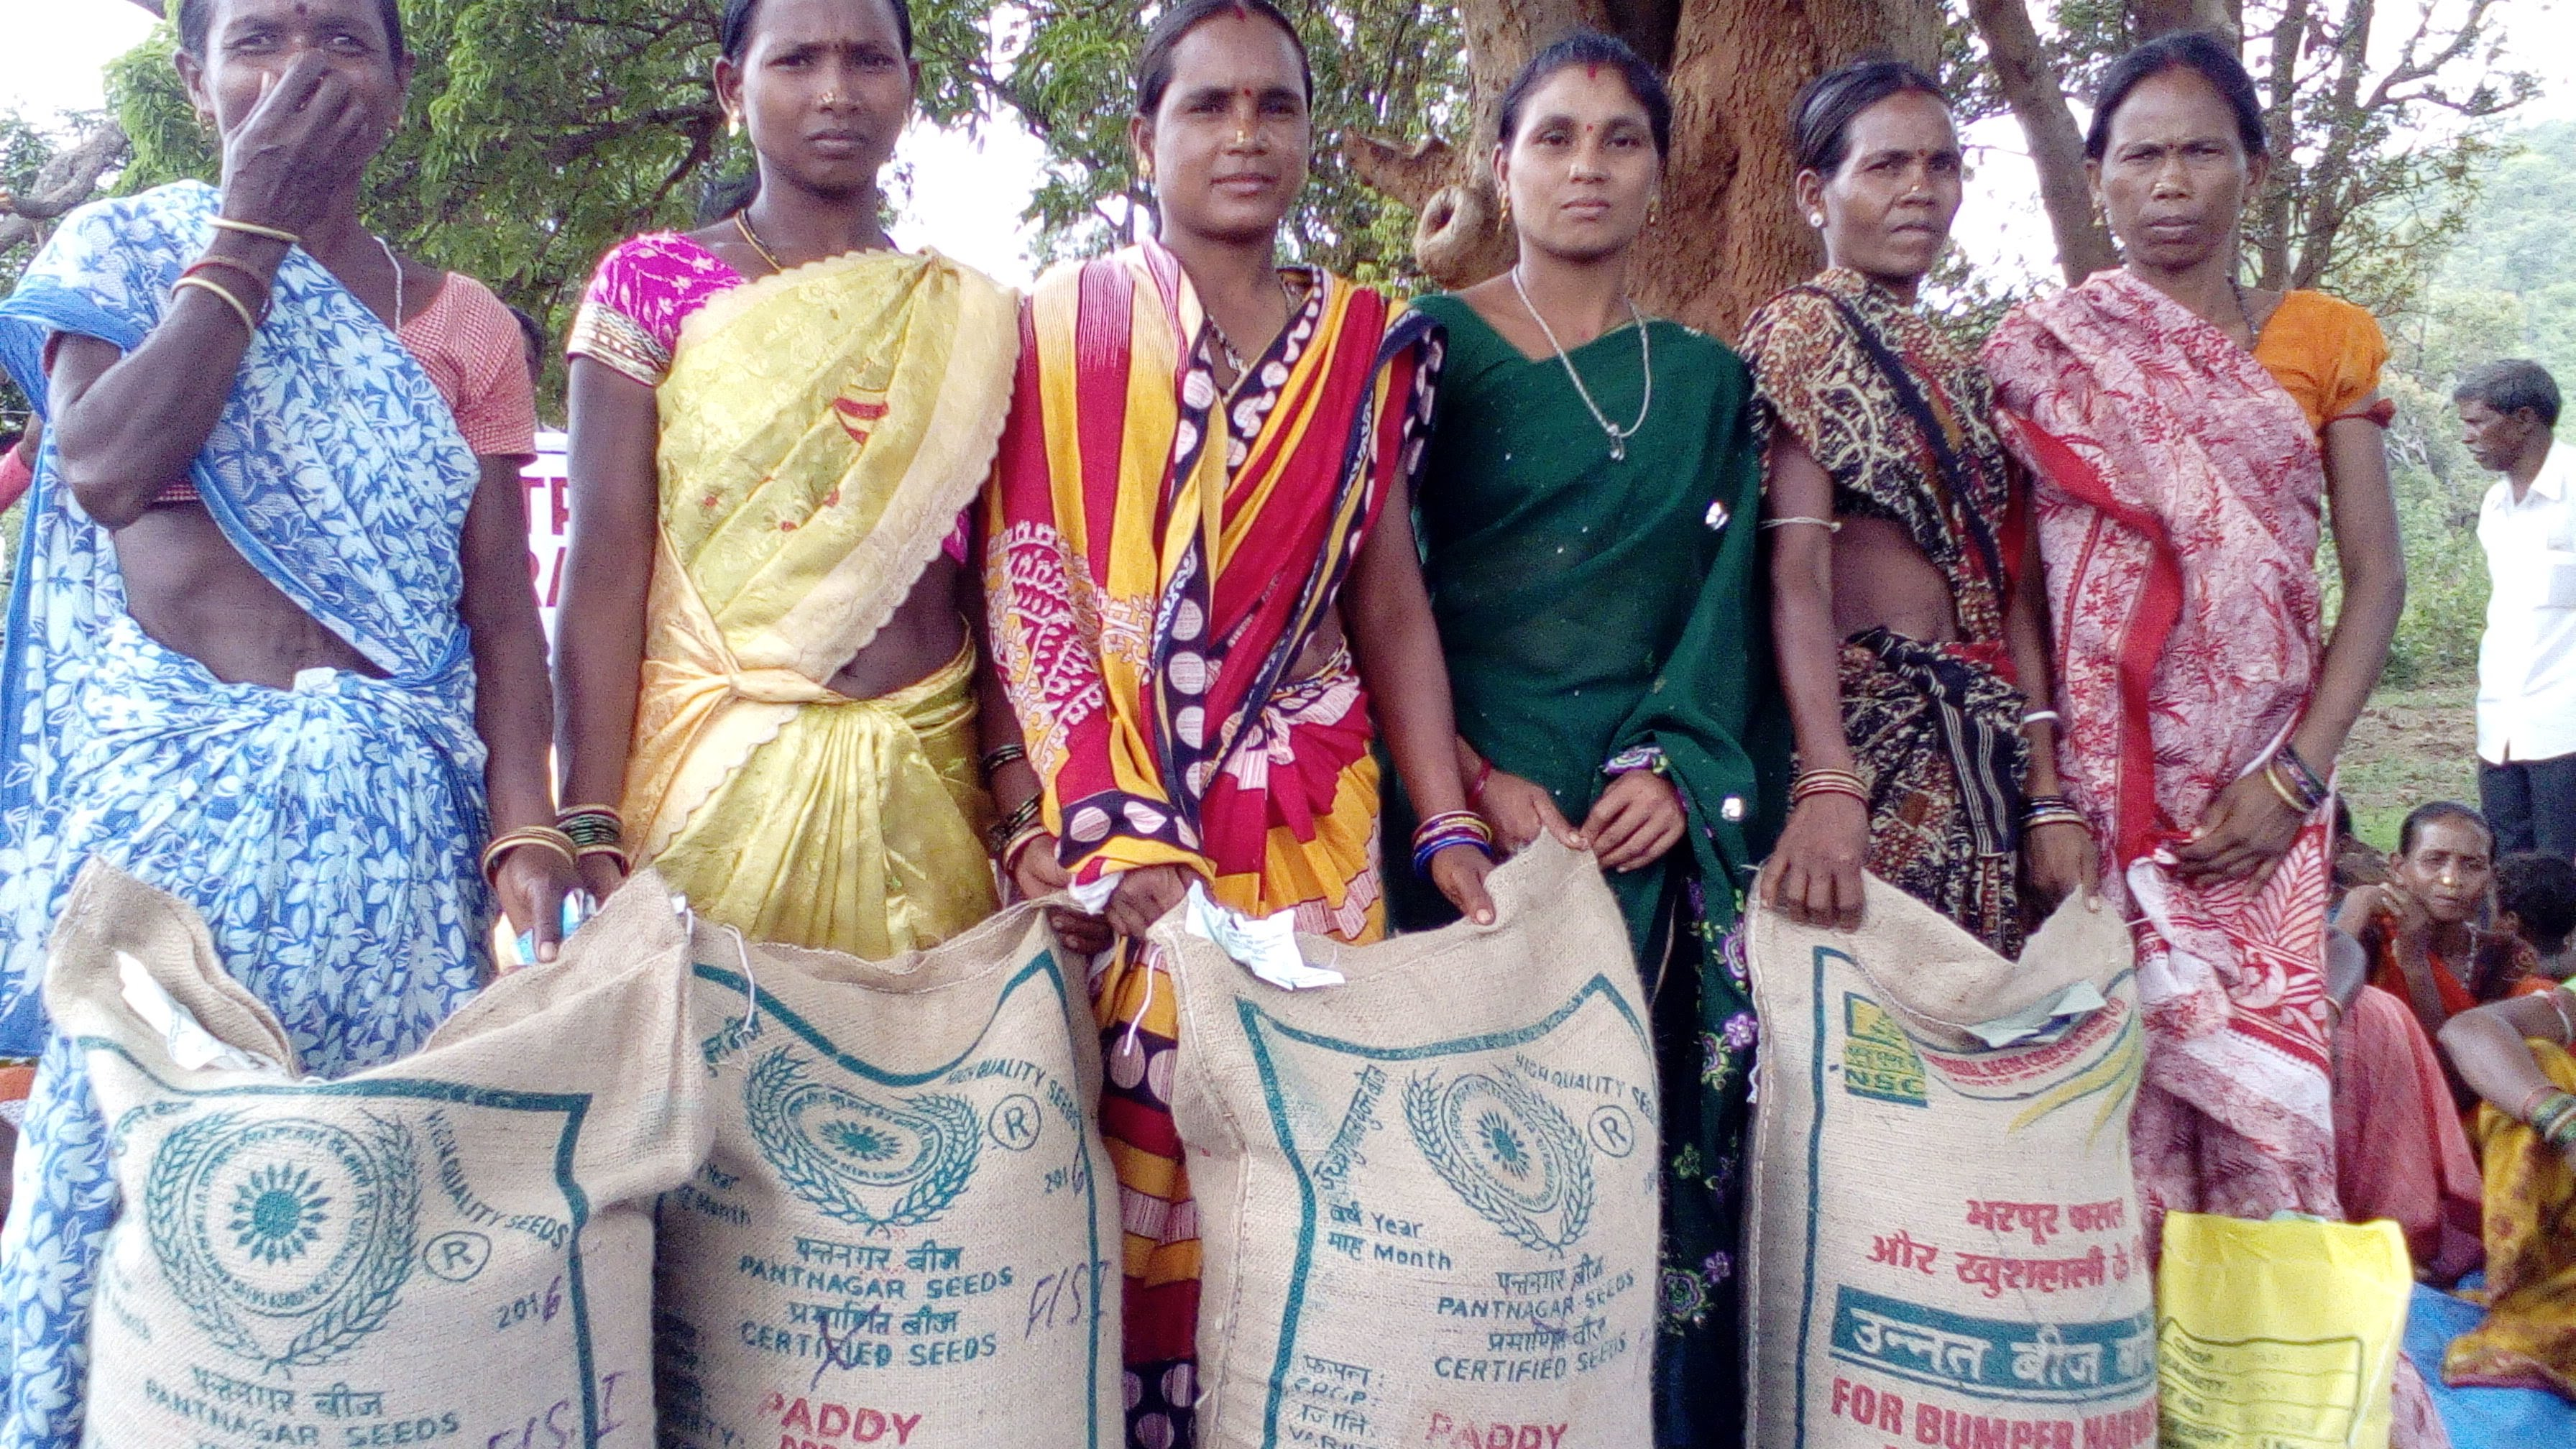 http://strasa.irri.org/resources/gender/womenricefarmersagentsofchangeineasternindia